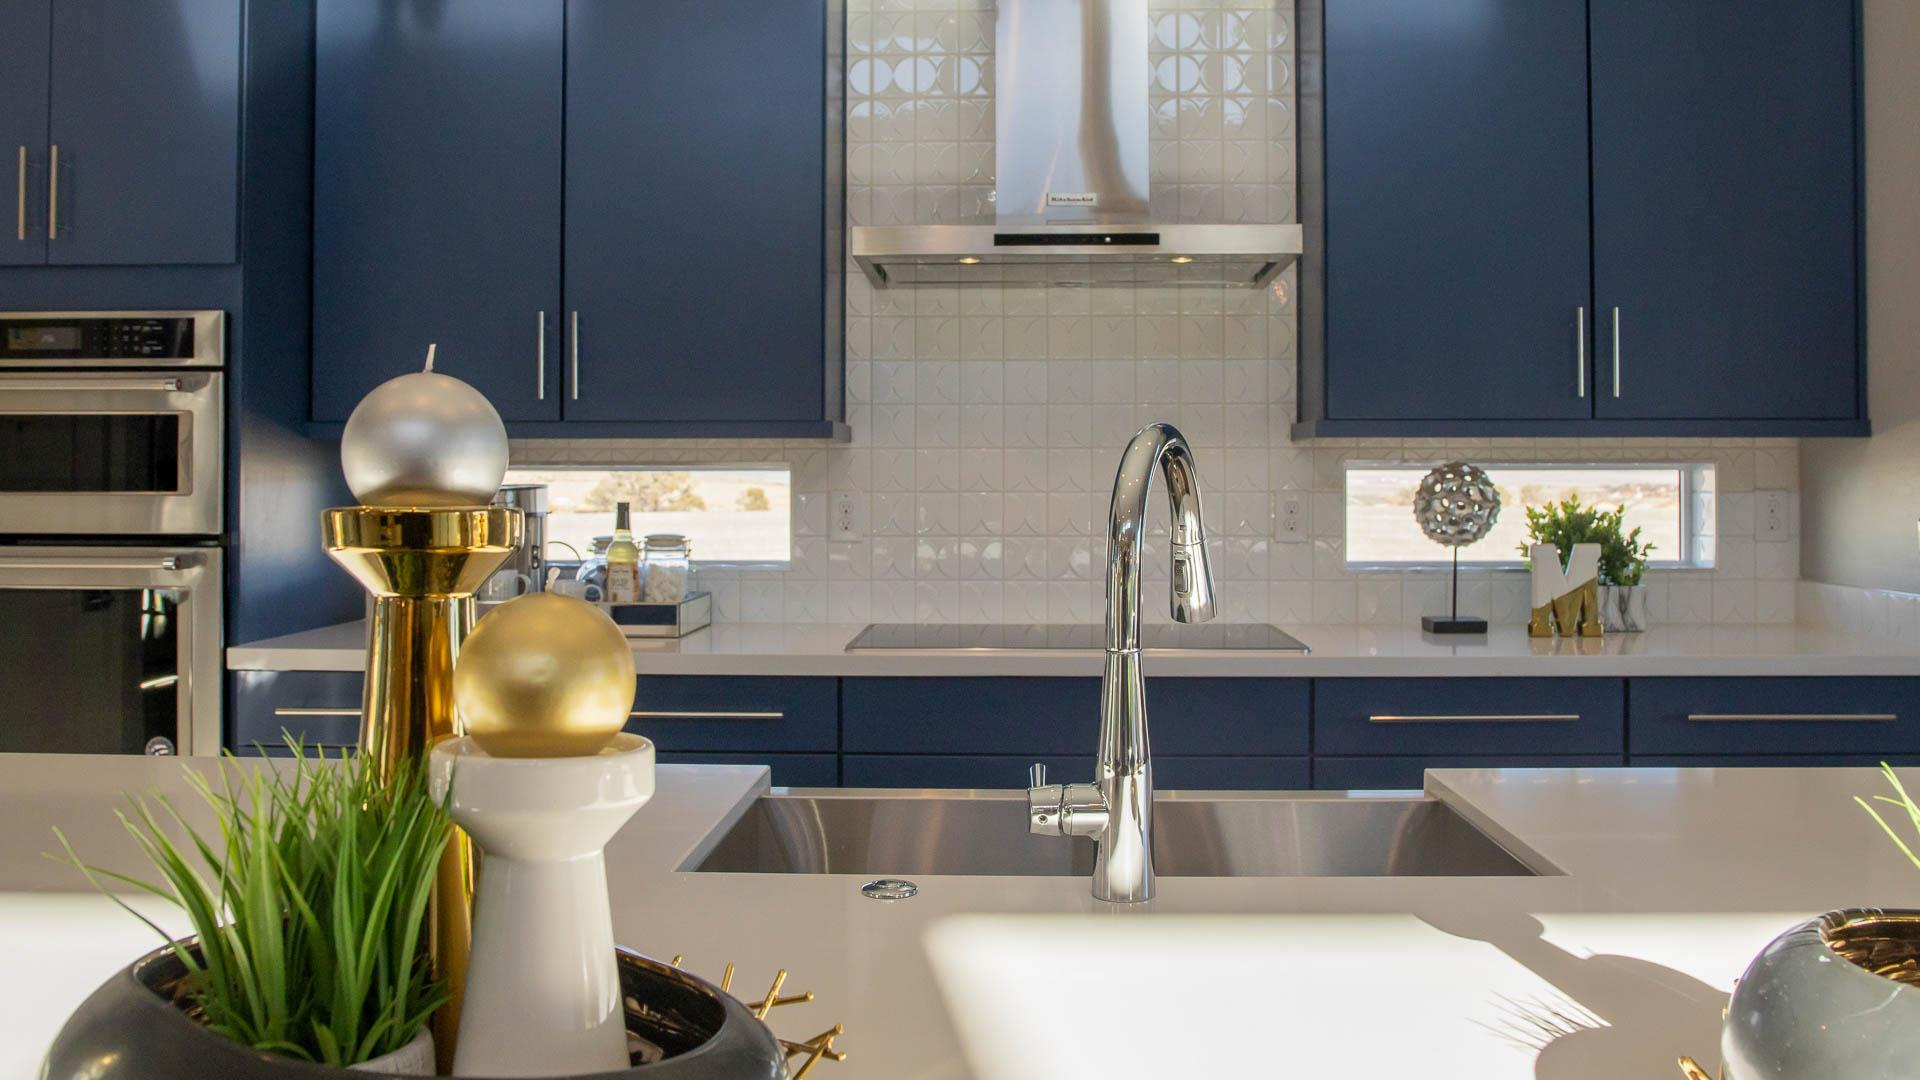 Kitchen featured in the J606 By Mandalay Homes in Prescott, AZ